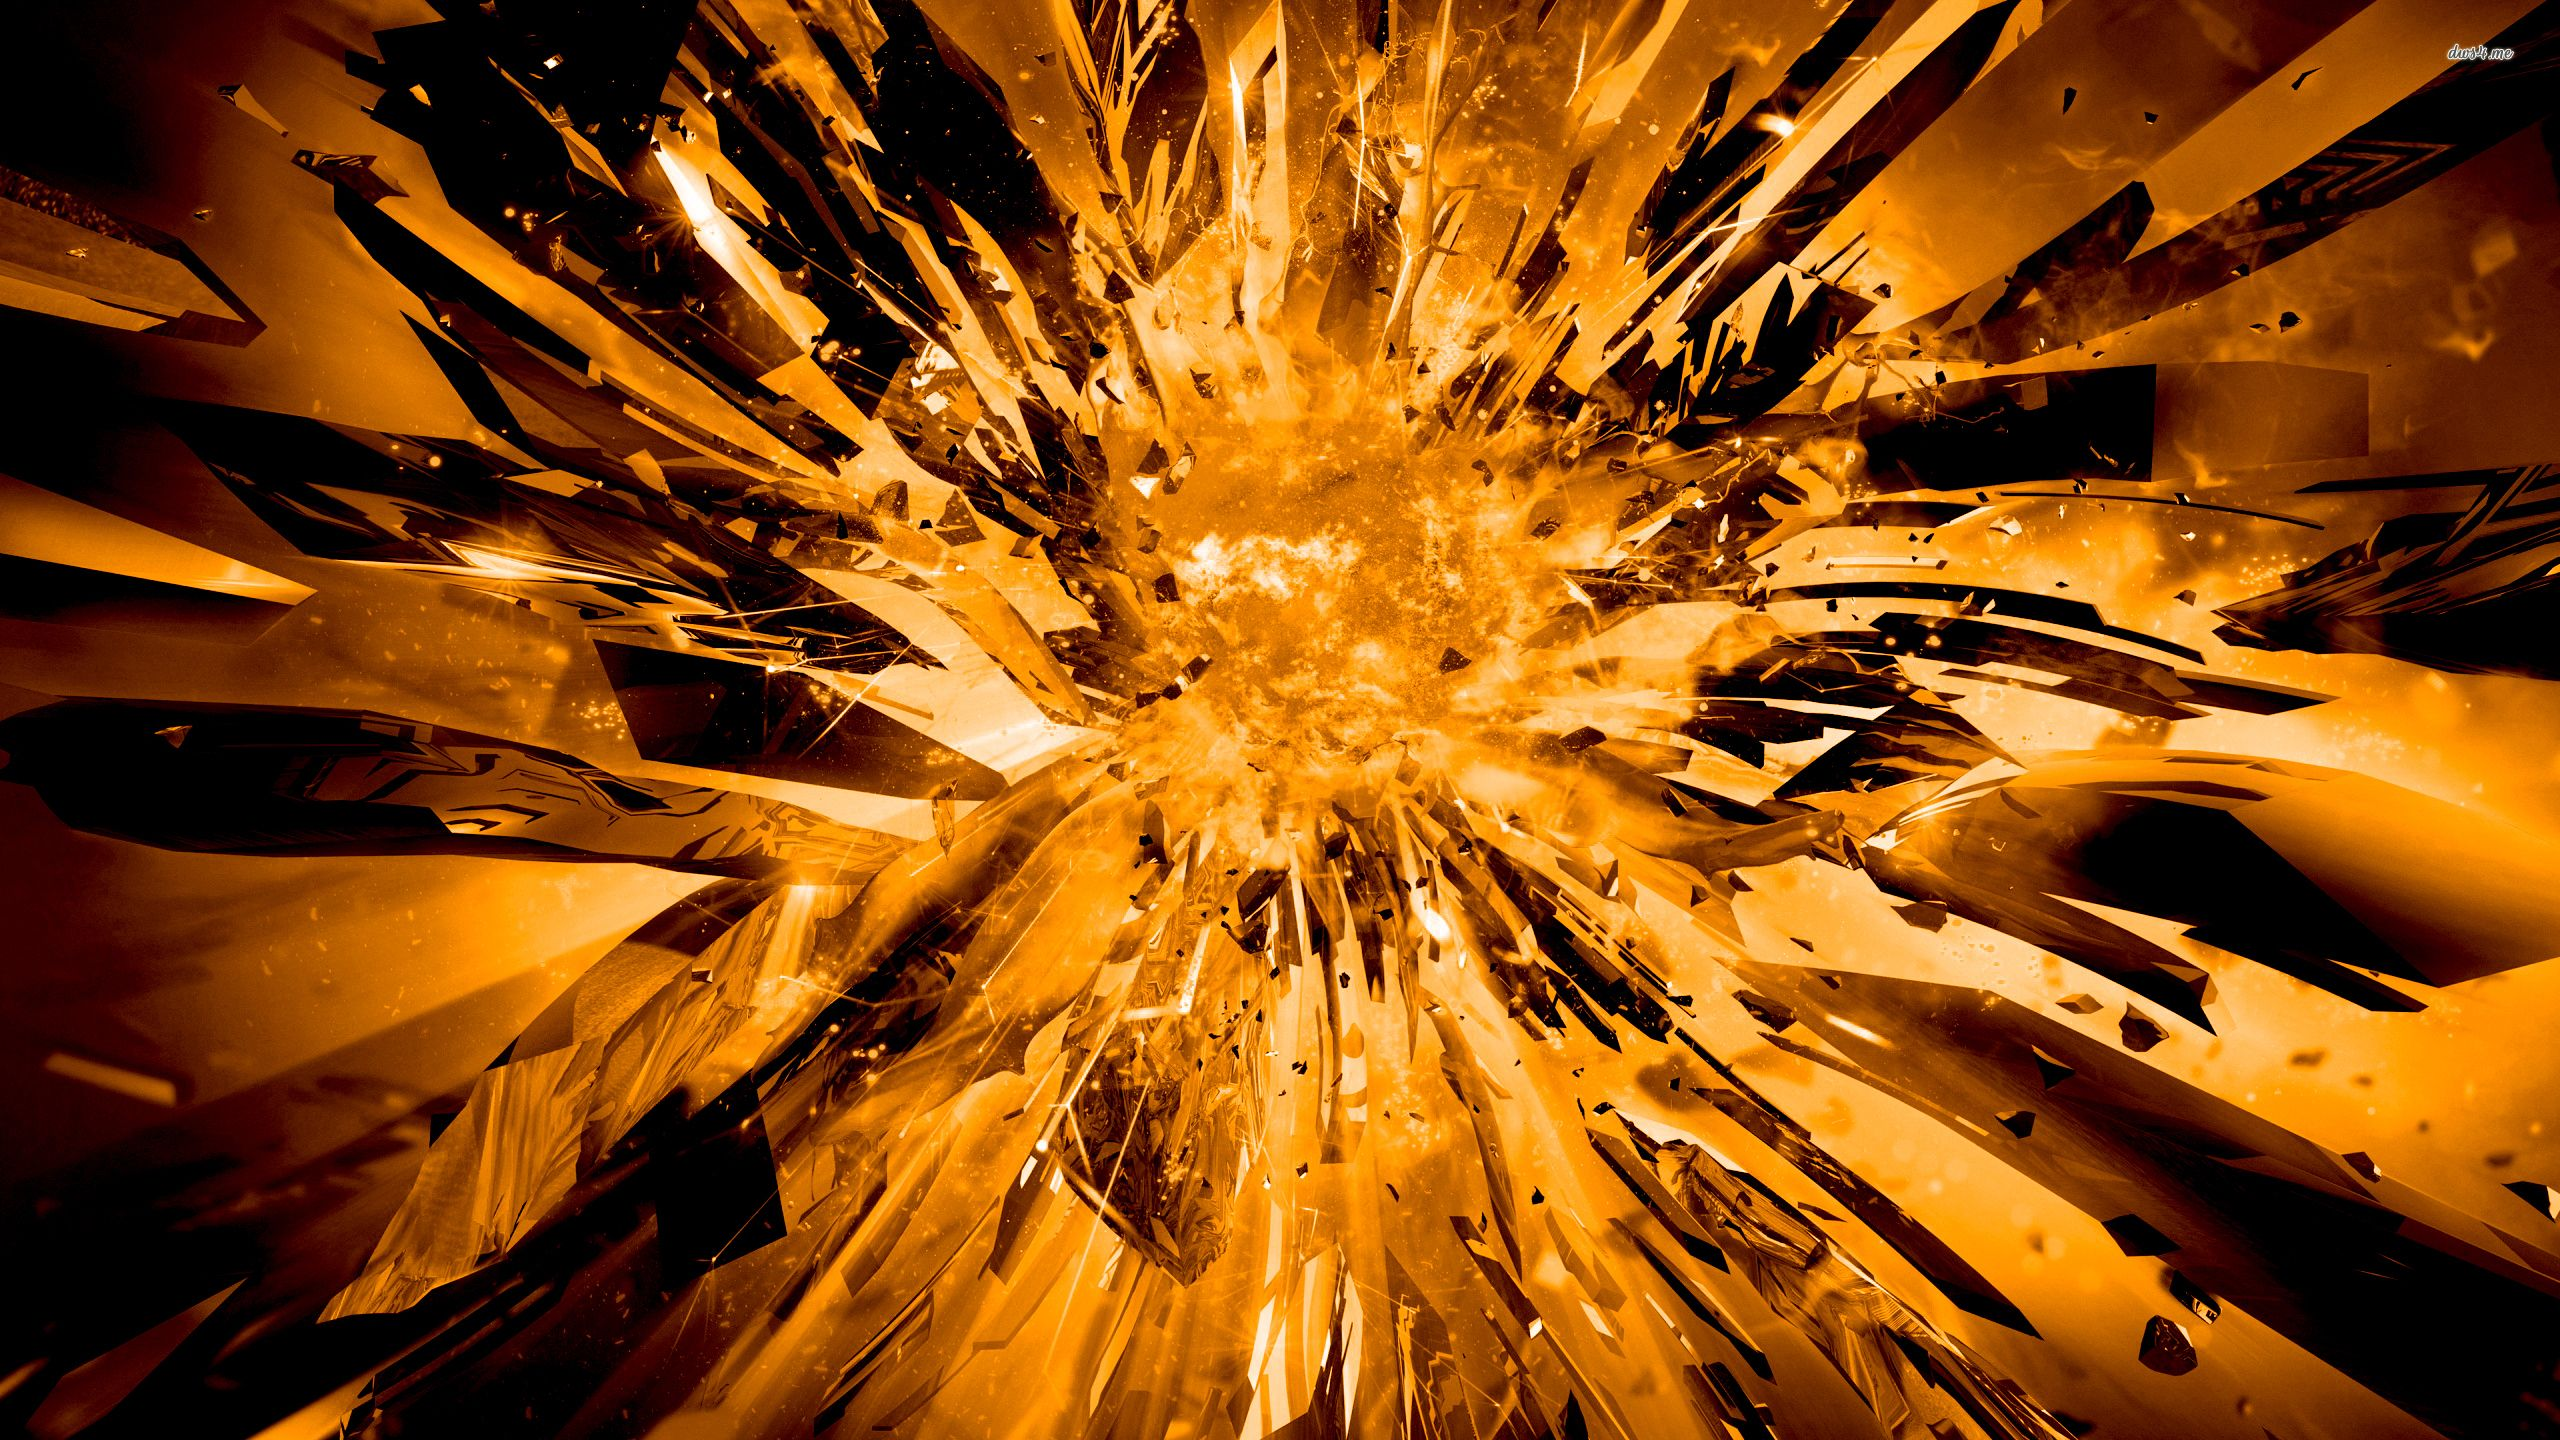 2560x1440 Explosion Wallpapers, 43+ Best & Inspirational High Quality ...